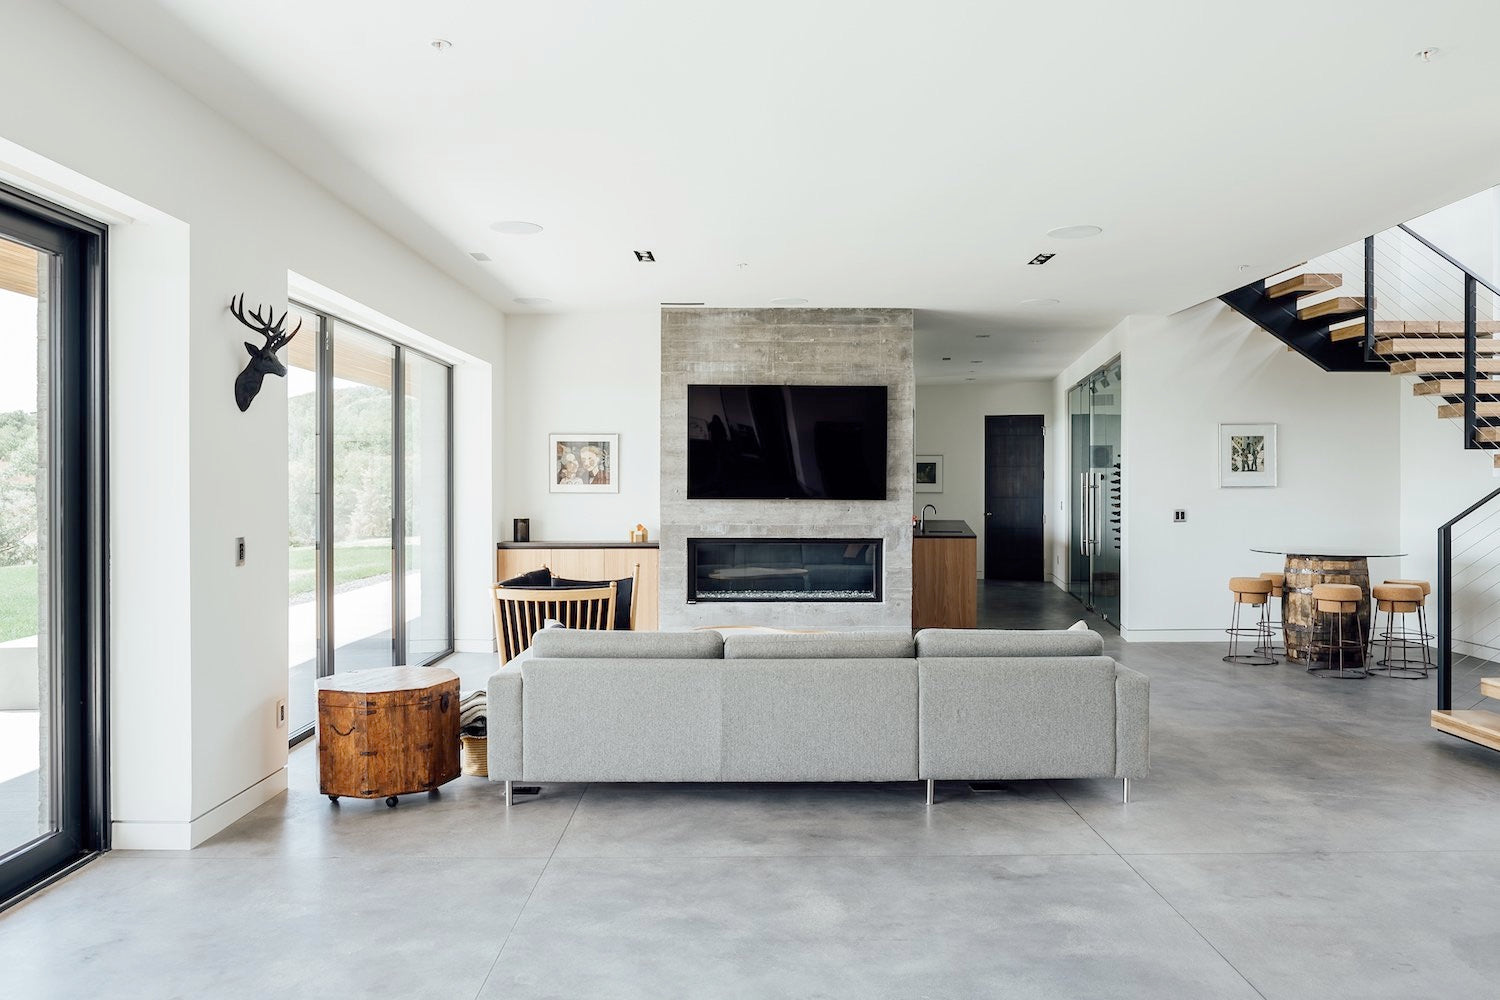 utah luxury home design - dwell